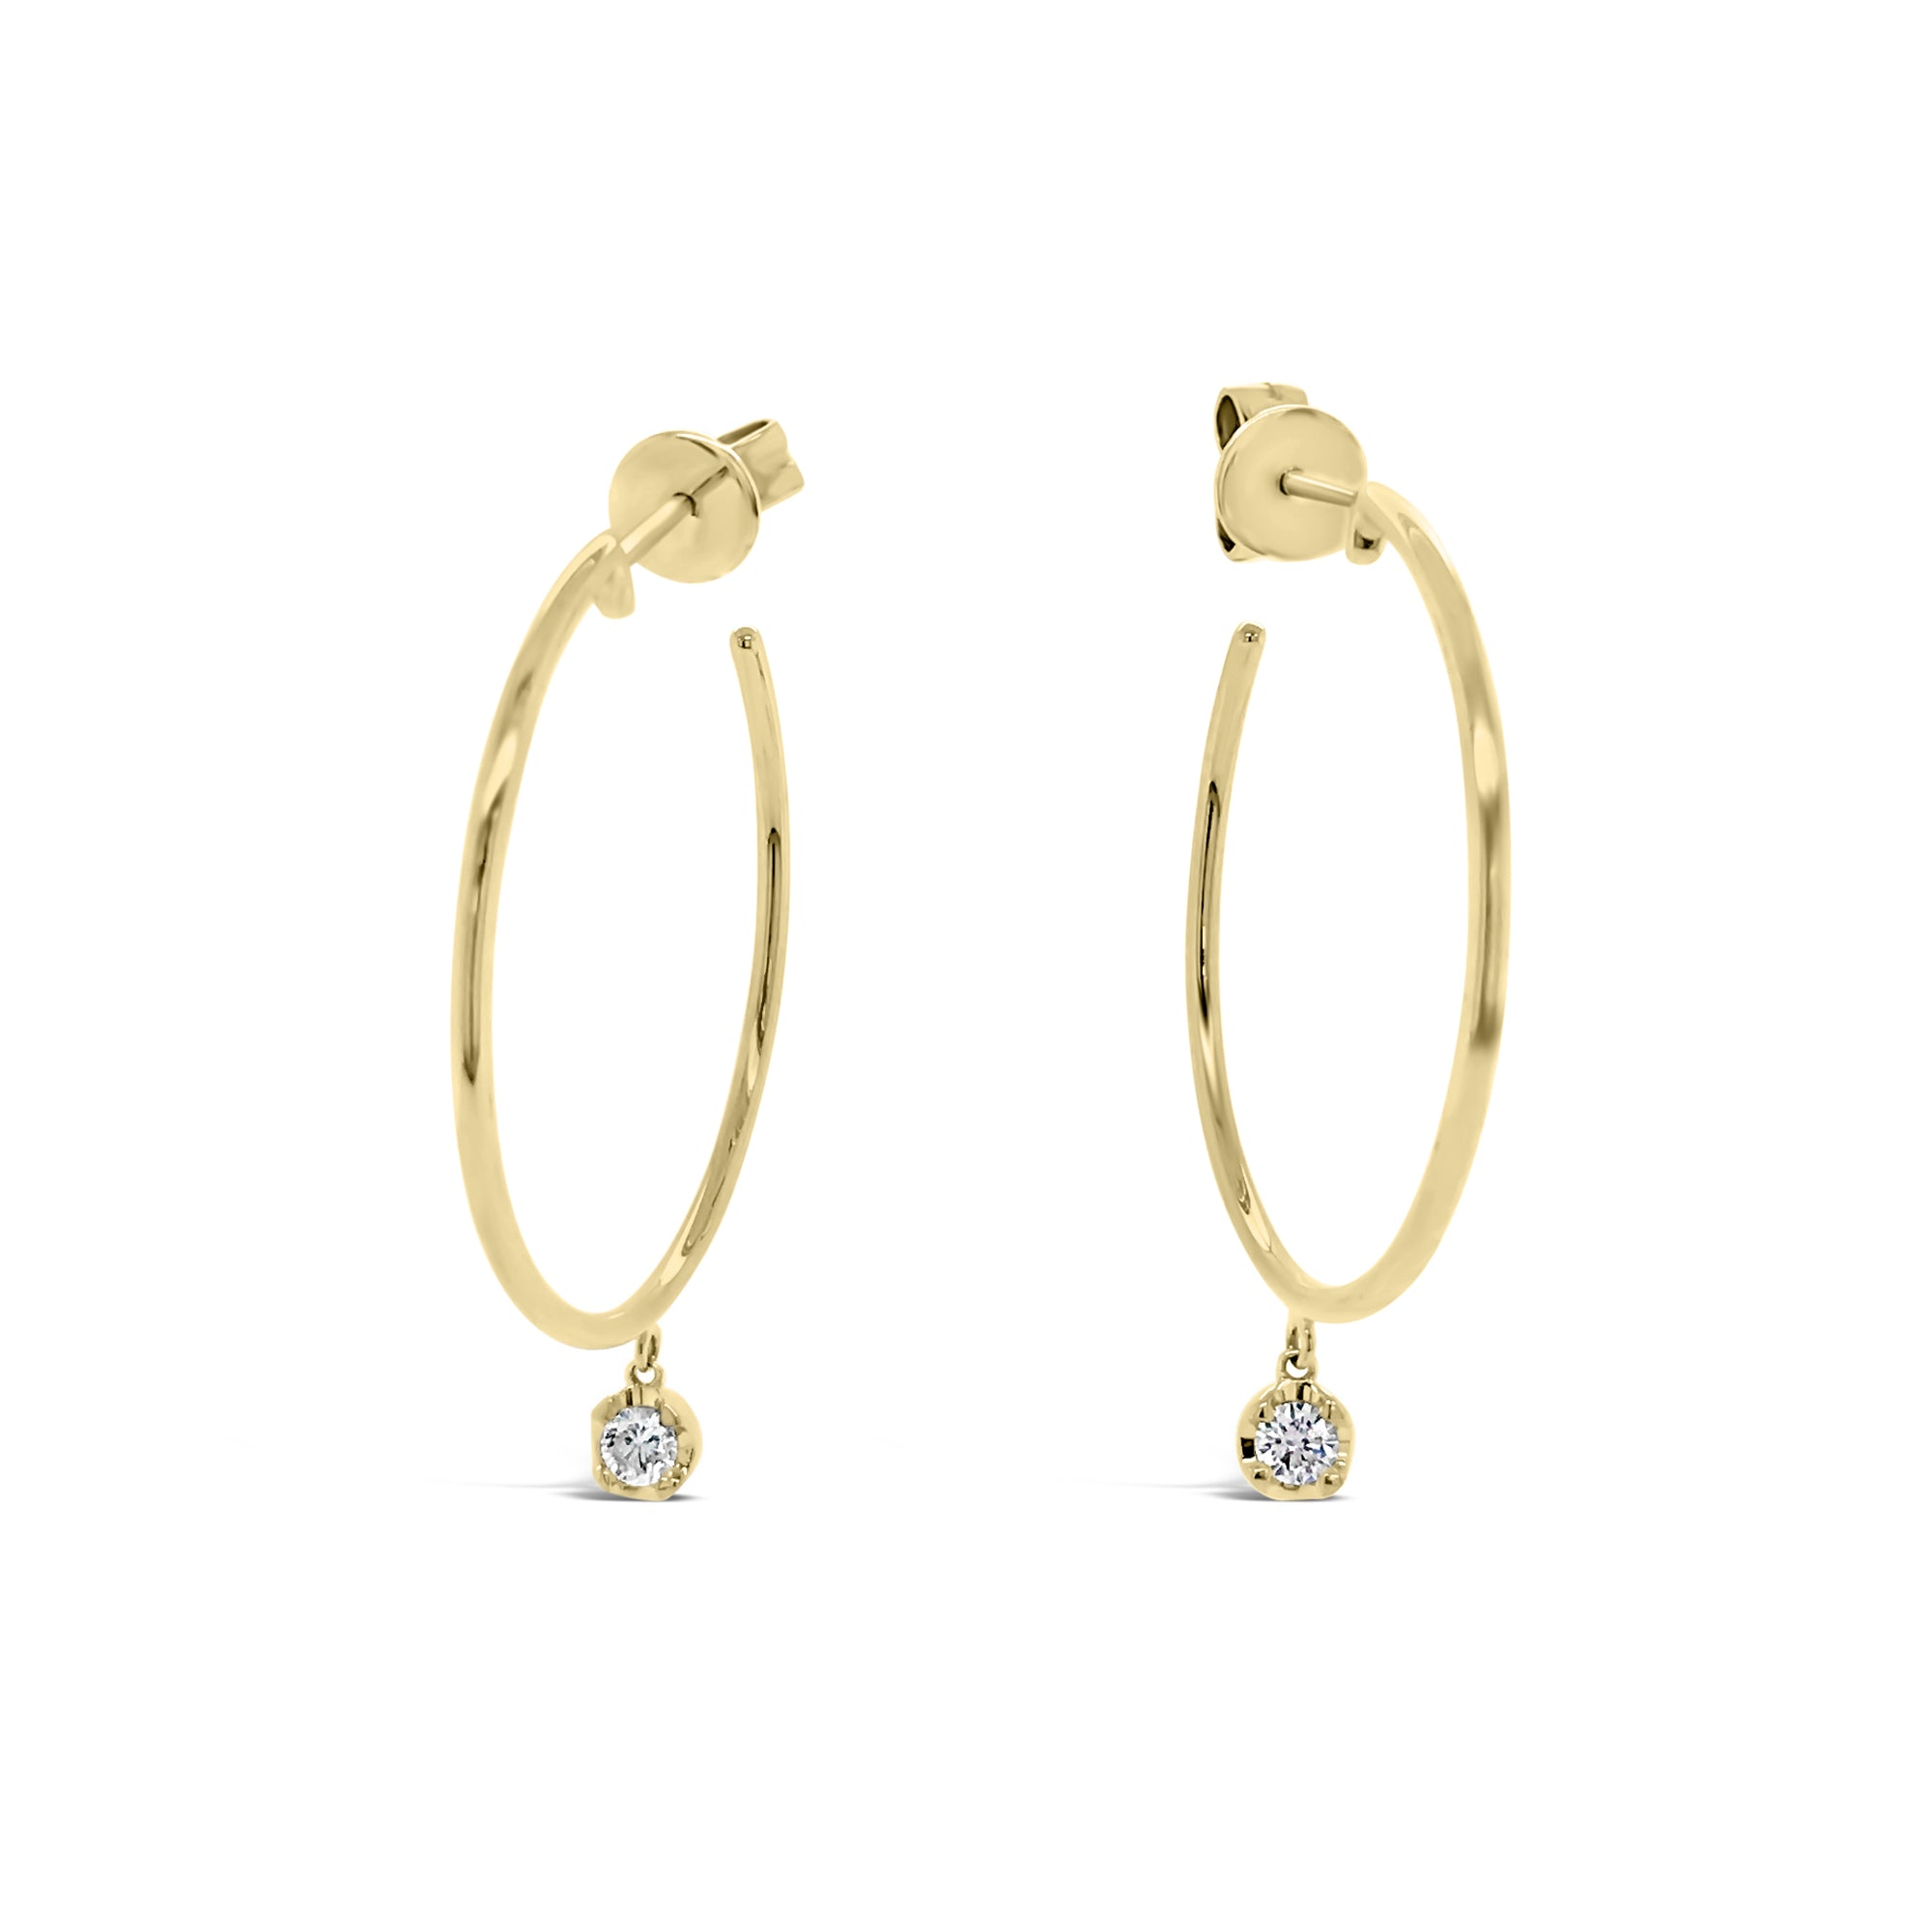 Gold Hoop Earrings with Bezel-set Diamond